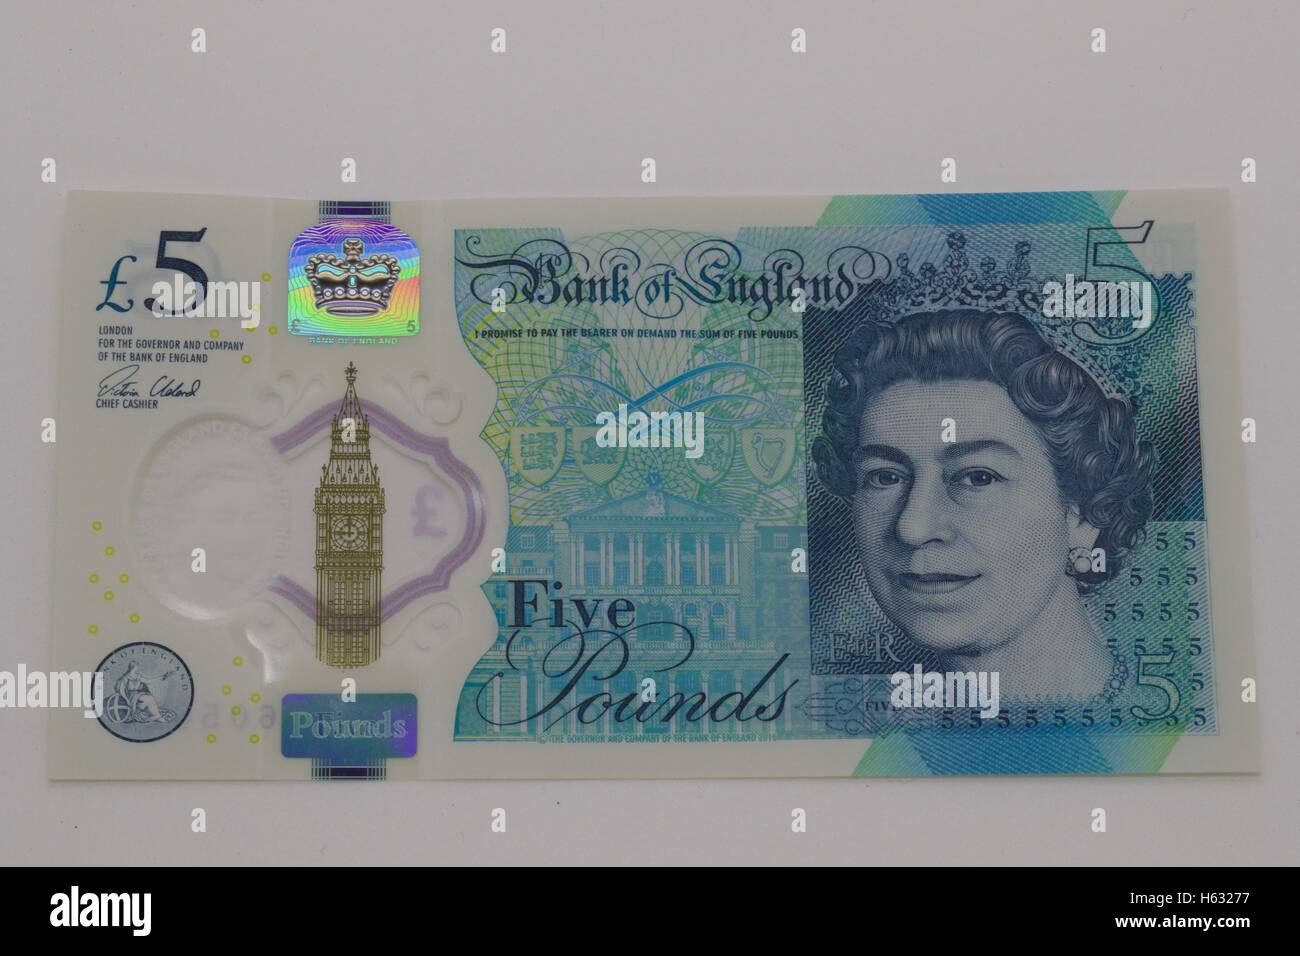 A new five pound note - Stock Image